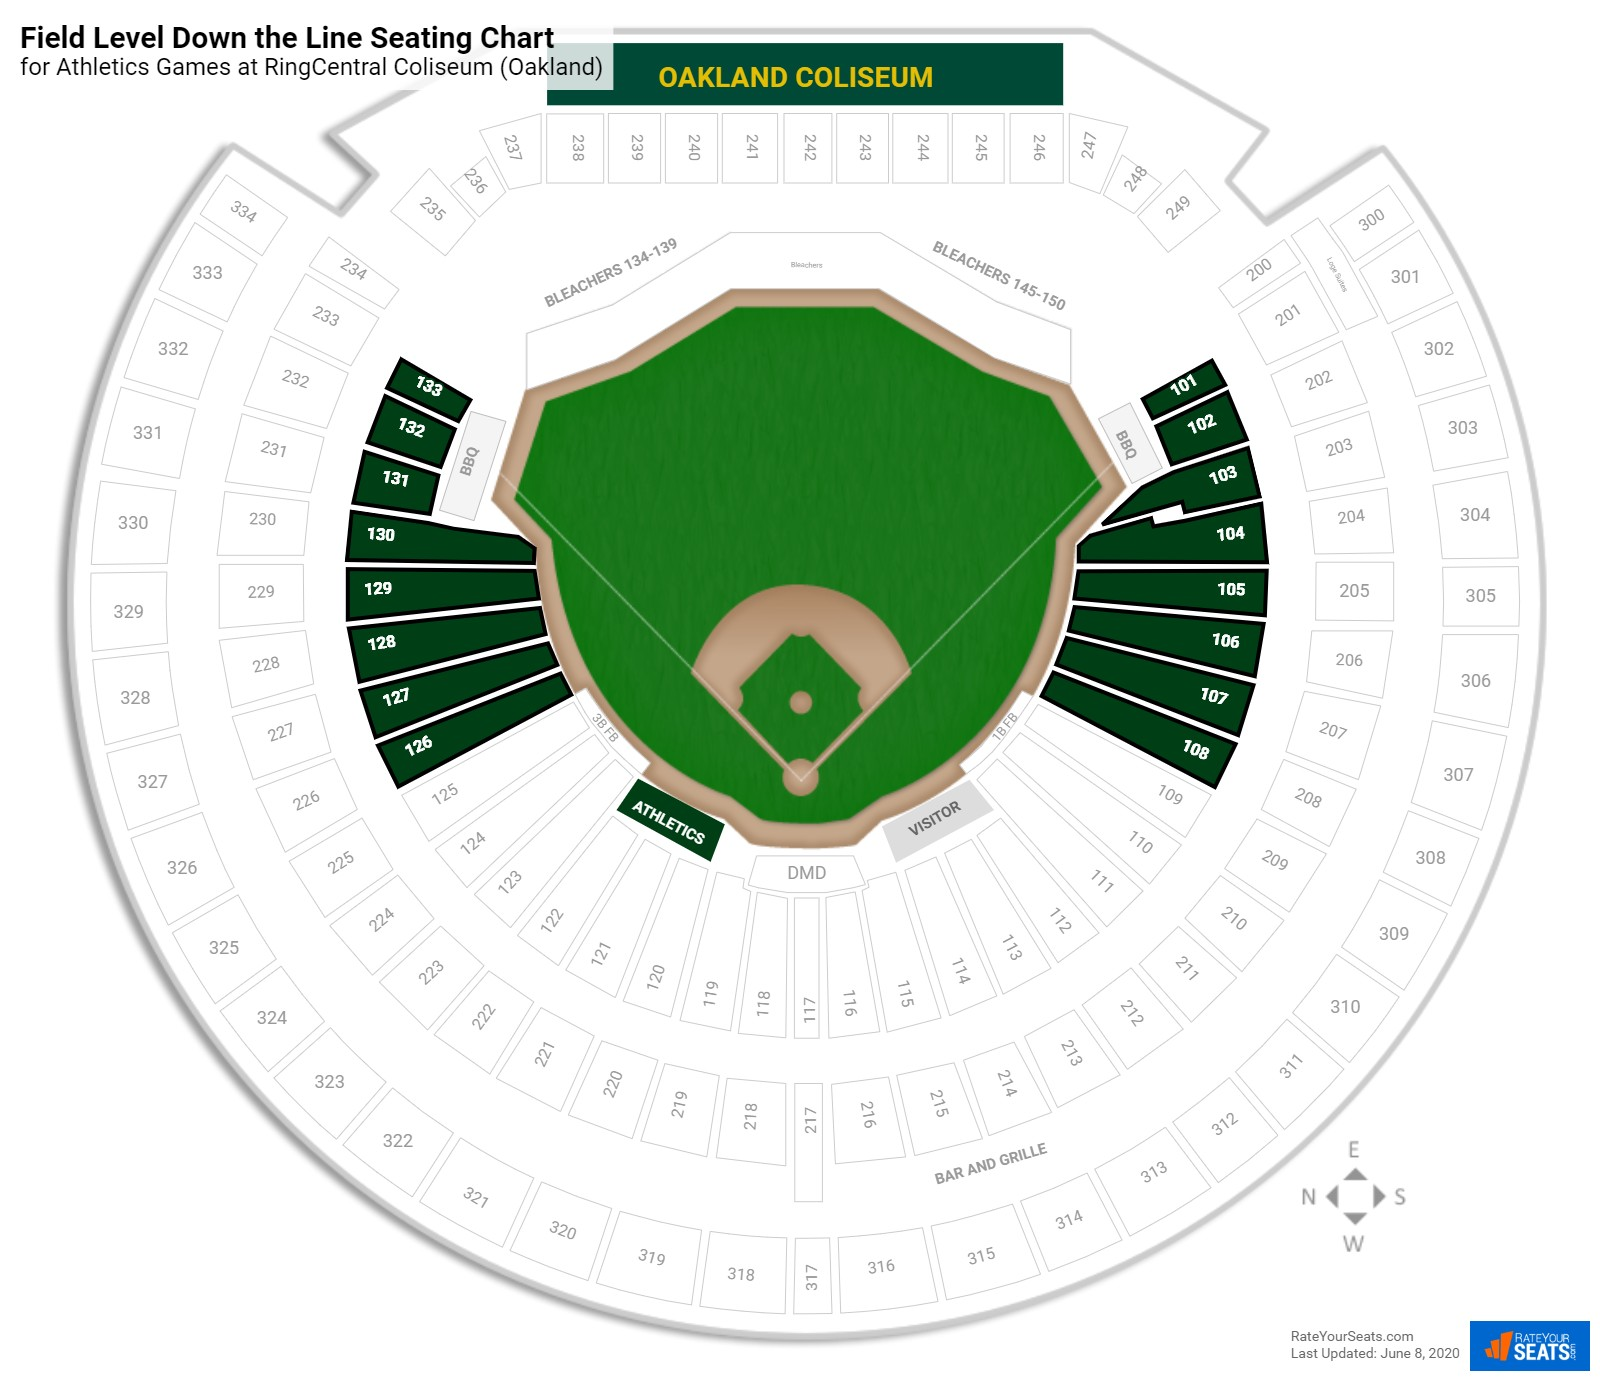 Oakland Coliseum Field Level Down the Line seating chart